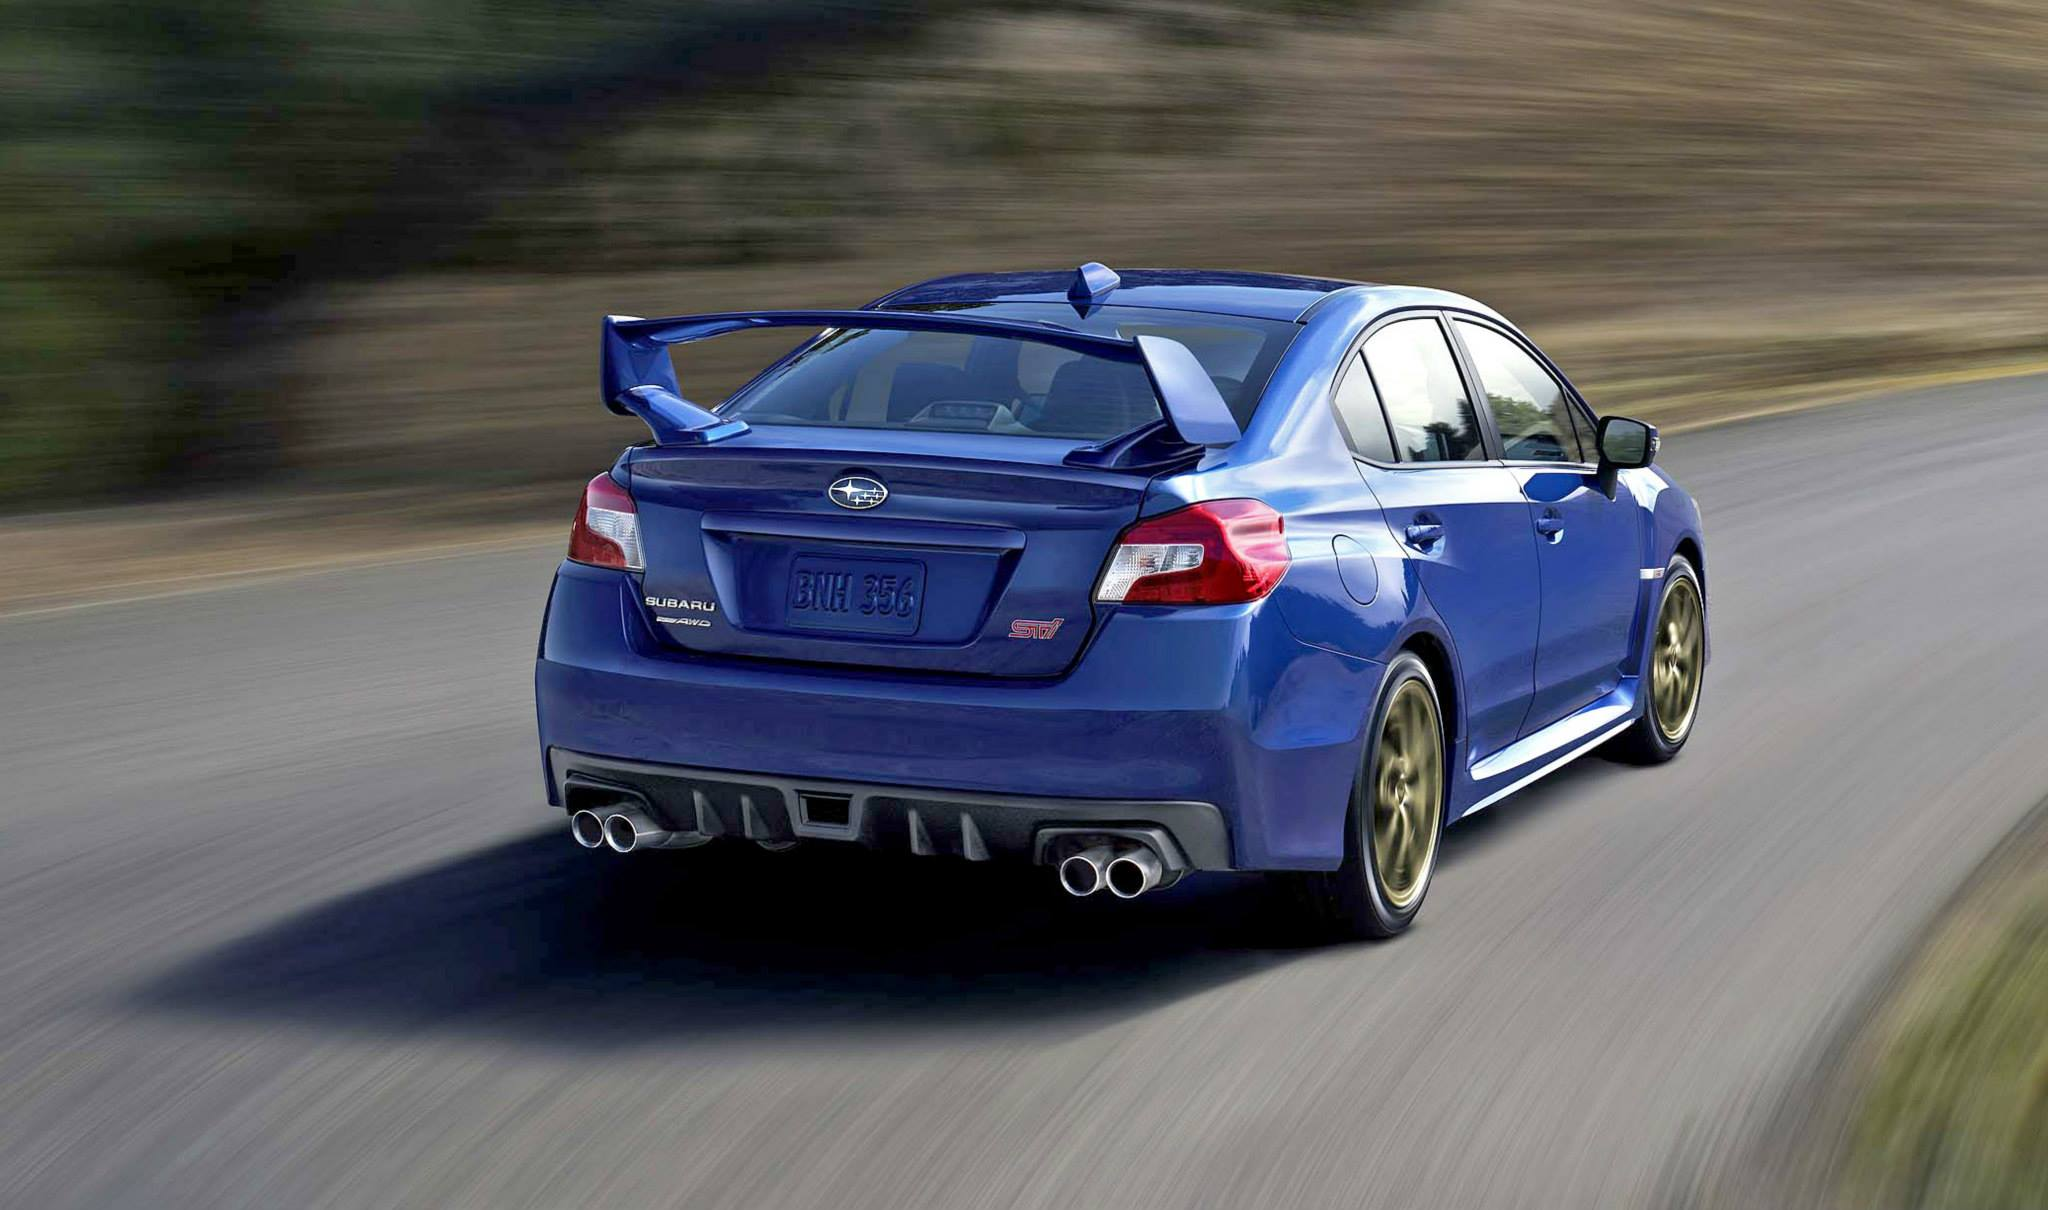 2015 subaru wrx sti official images surface. Black Bedroom Furniture Sets. Home Design Ideas